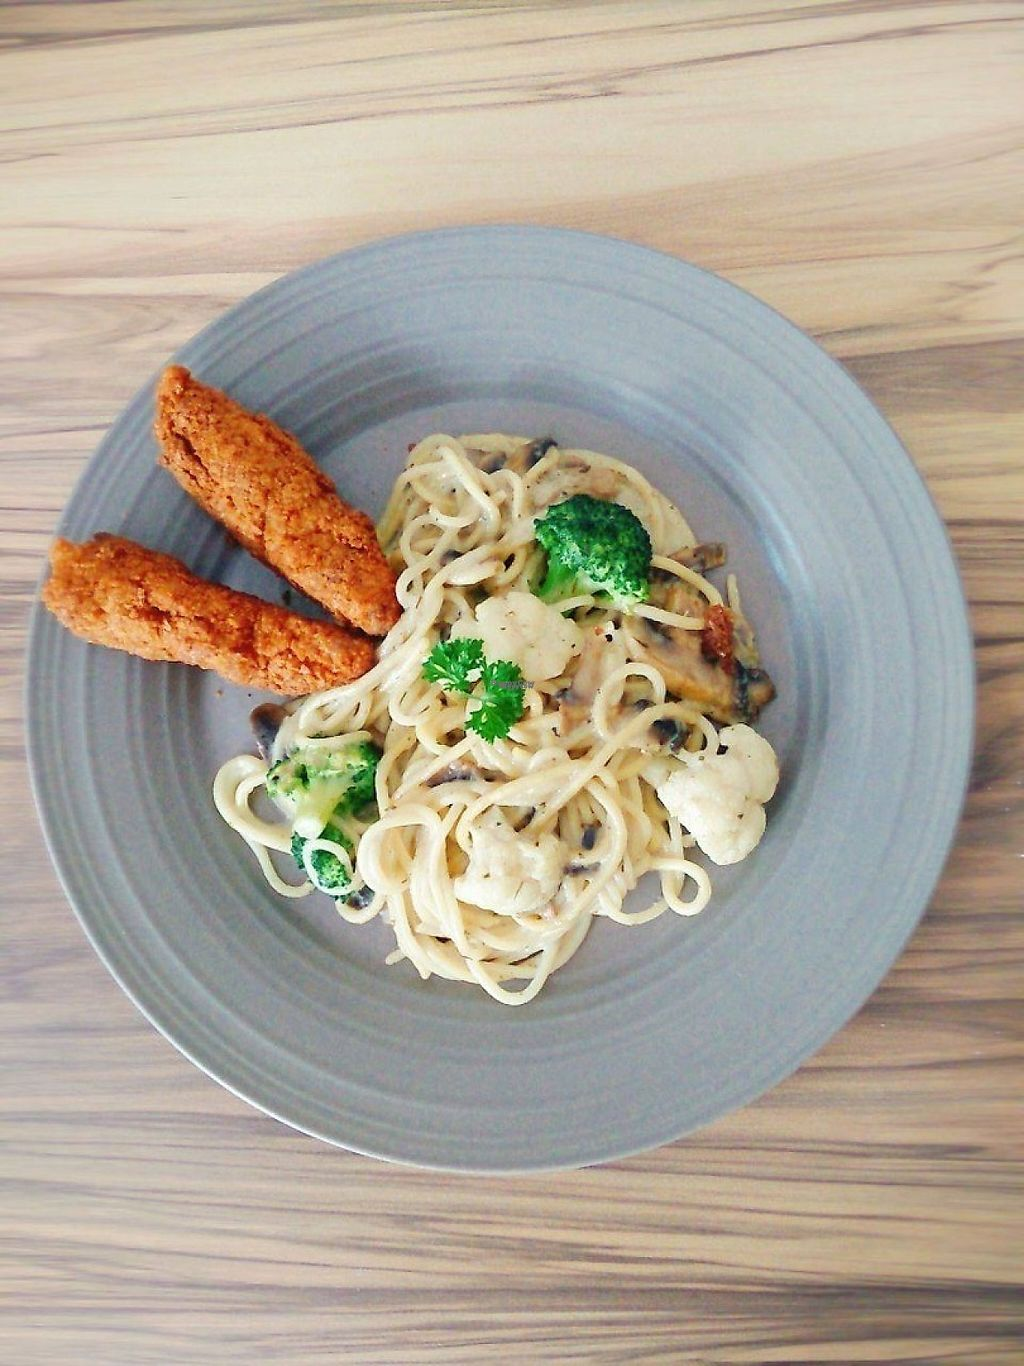 """Photo of Fresh Moment - maybe closed  by <a href=""""/members/profile/happyin"""">happyin</a> <br/>Mushroom Spaghetti with Breaded Sticcks <br/> December 27, 2016  - <a href='/contact/abuse/image/69112/204915'>Report</a>"""